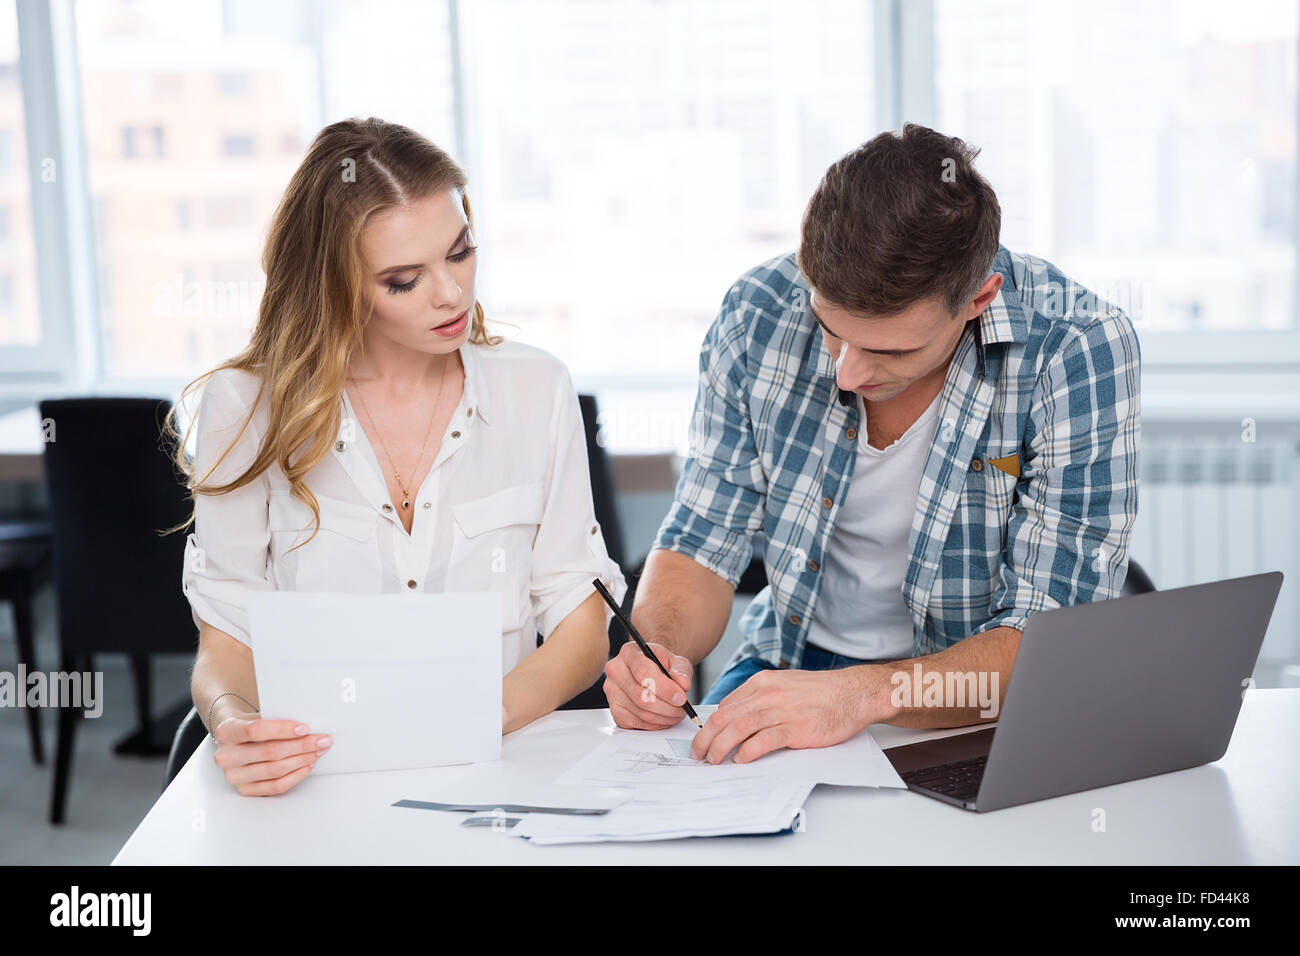 Concentrated pensive woman and man working and discussing project and using laptop in the office - Stock Image